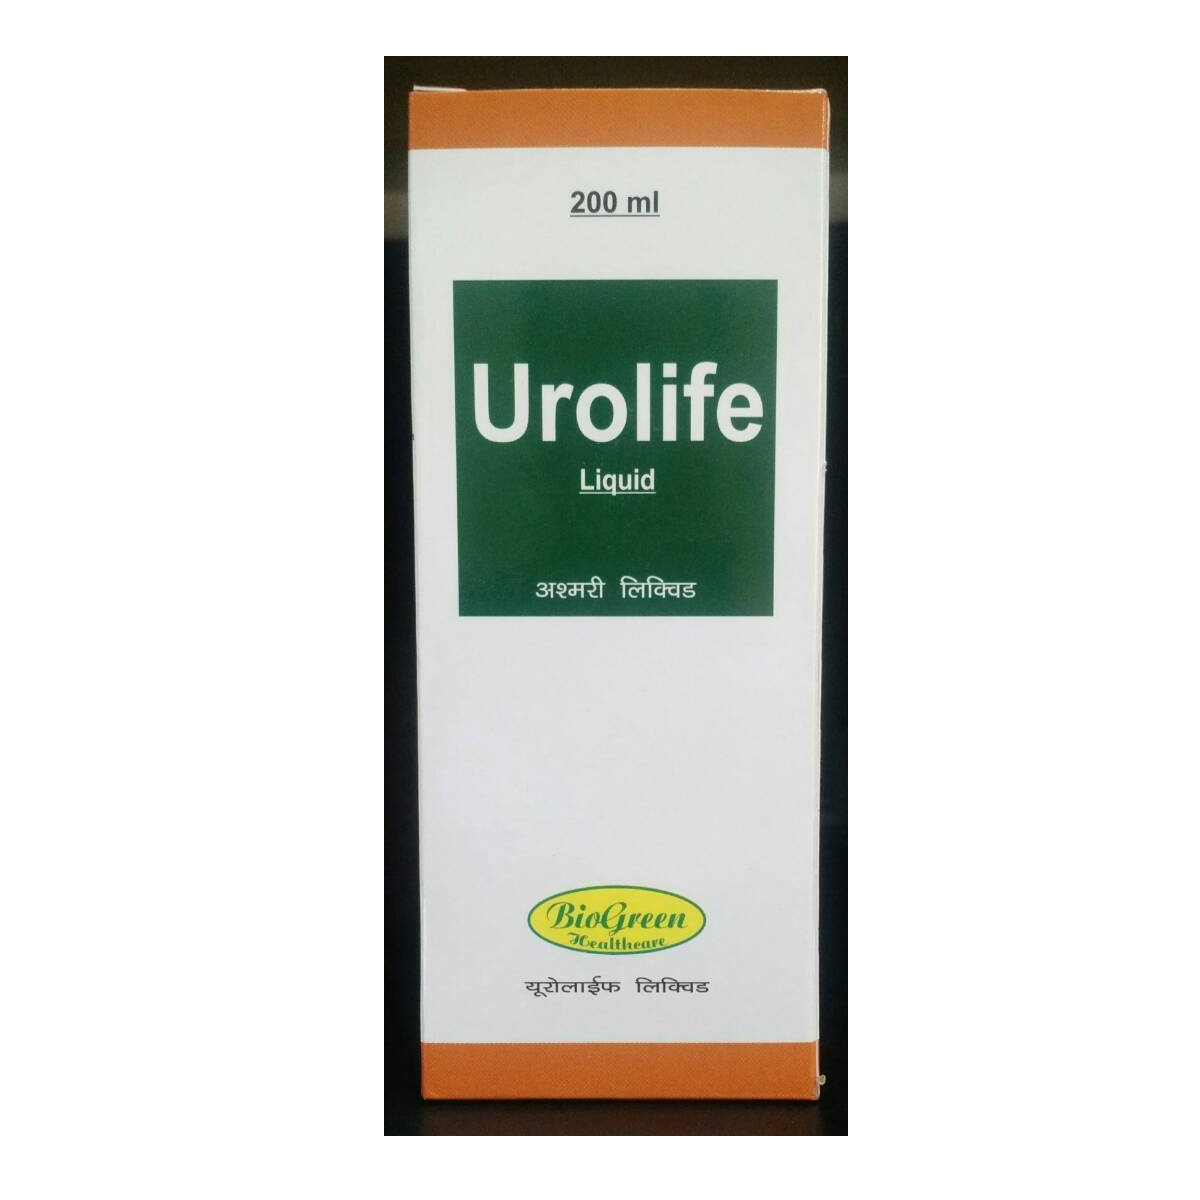 Urolife Liquid In Amethi